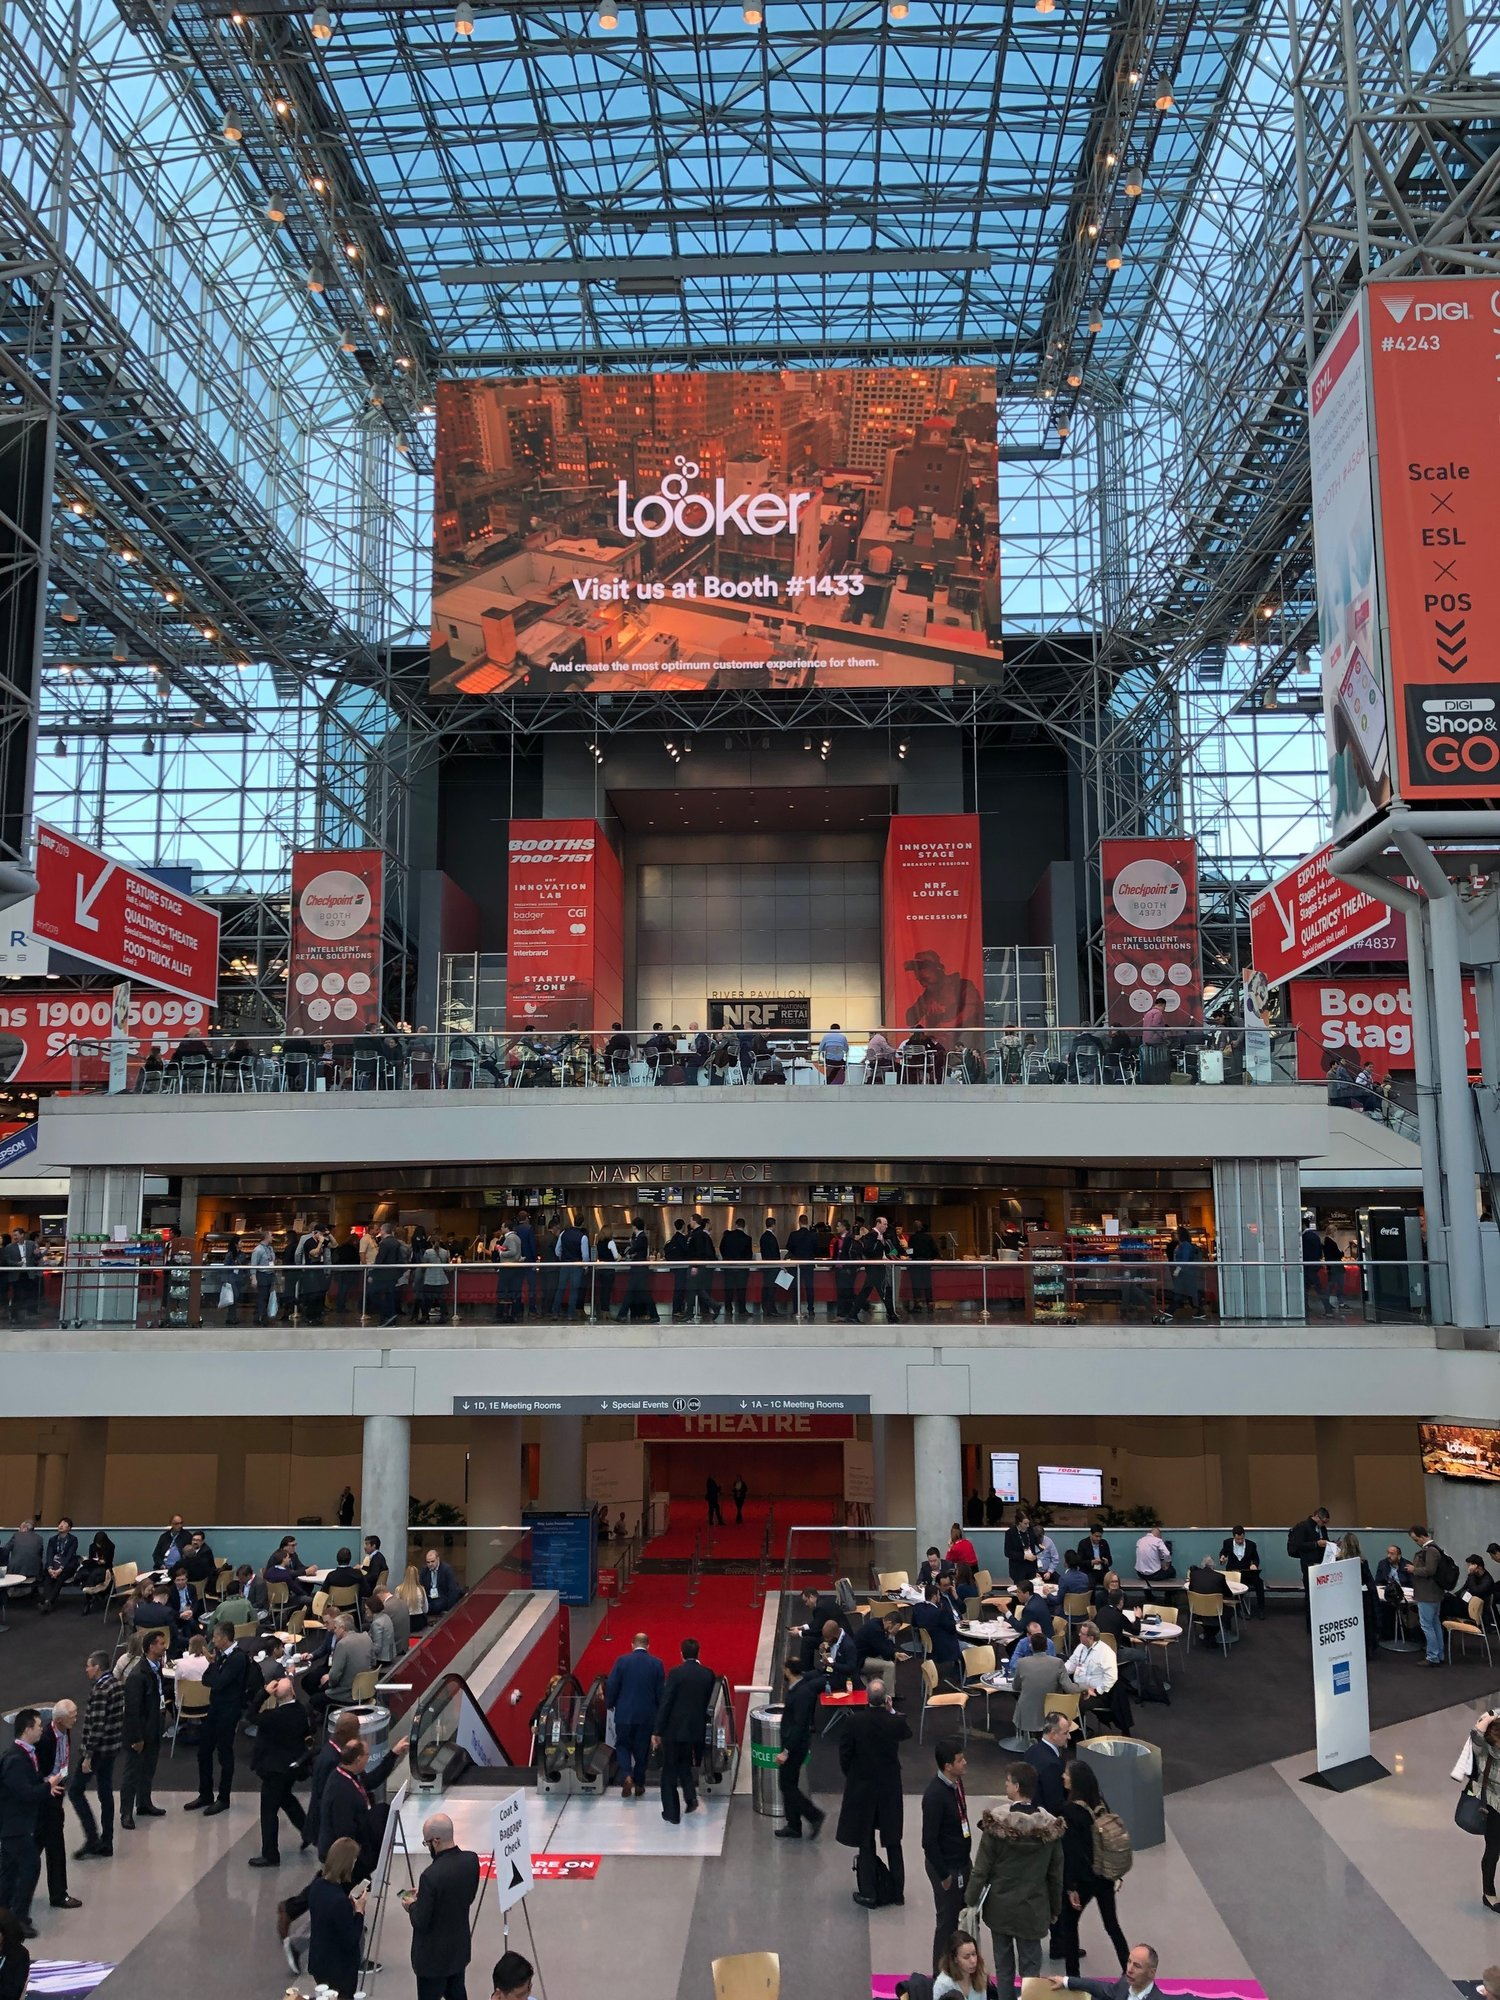 NRF 2019- What an amazing show!